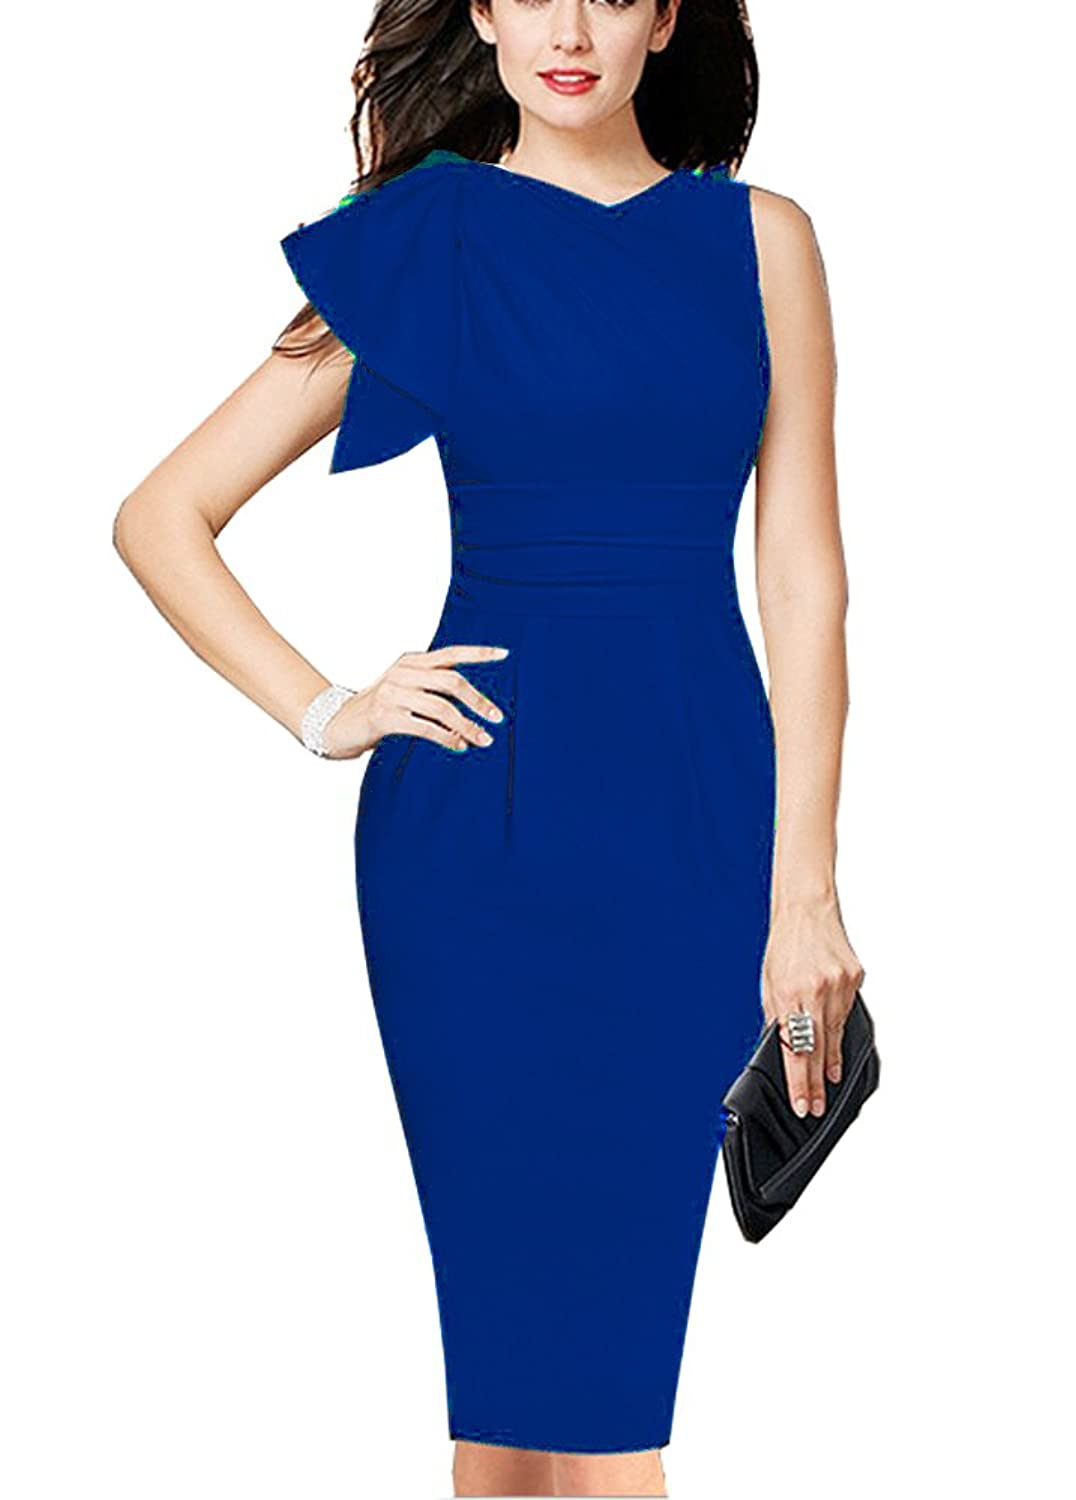 REPHYLLIS Women Elegant Sleeveless Working Cocktail Casual Party OL Sheath Dress